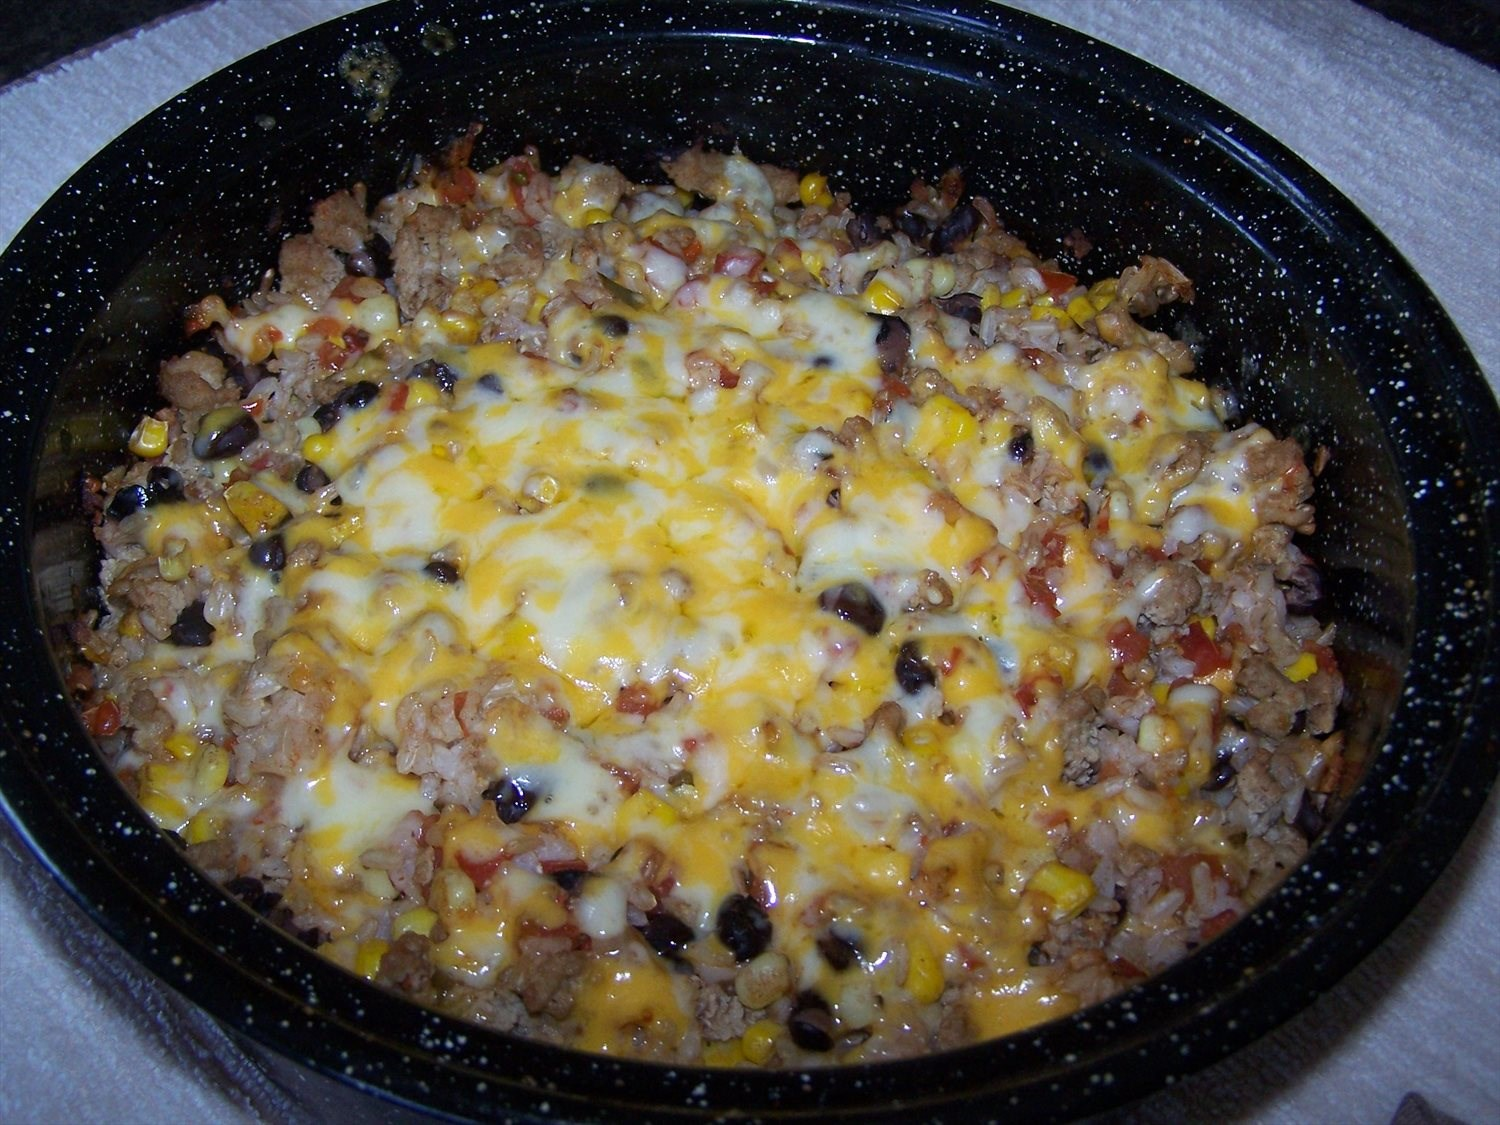 Santa Fe Stuffed Pepper Casserole